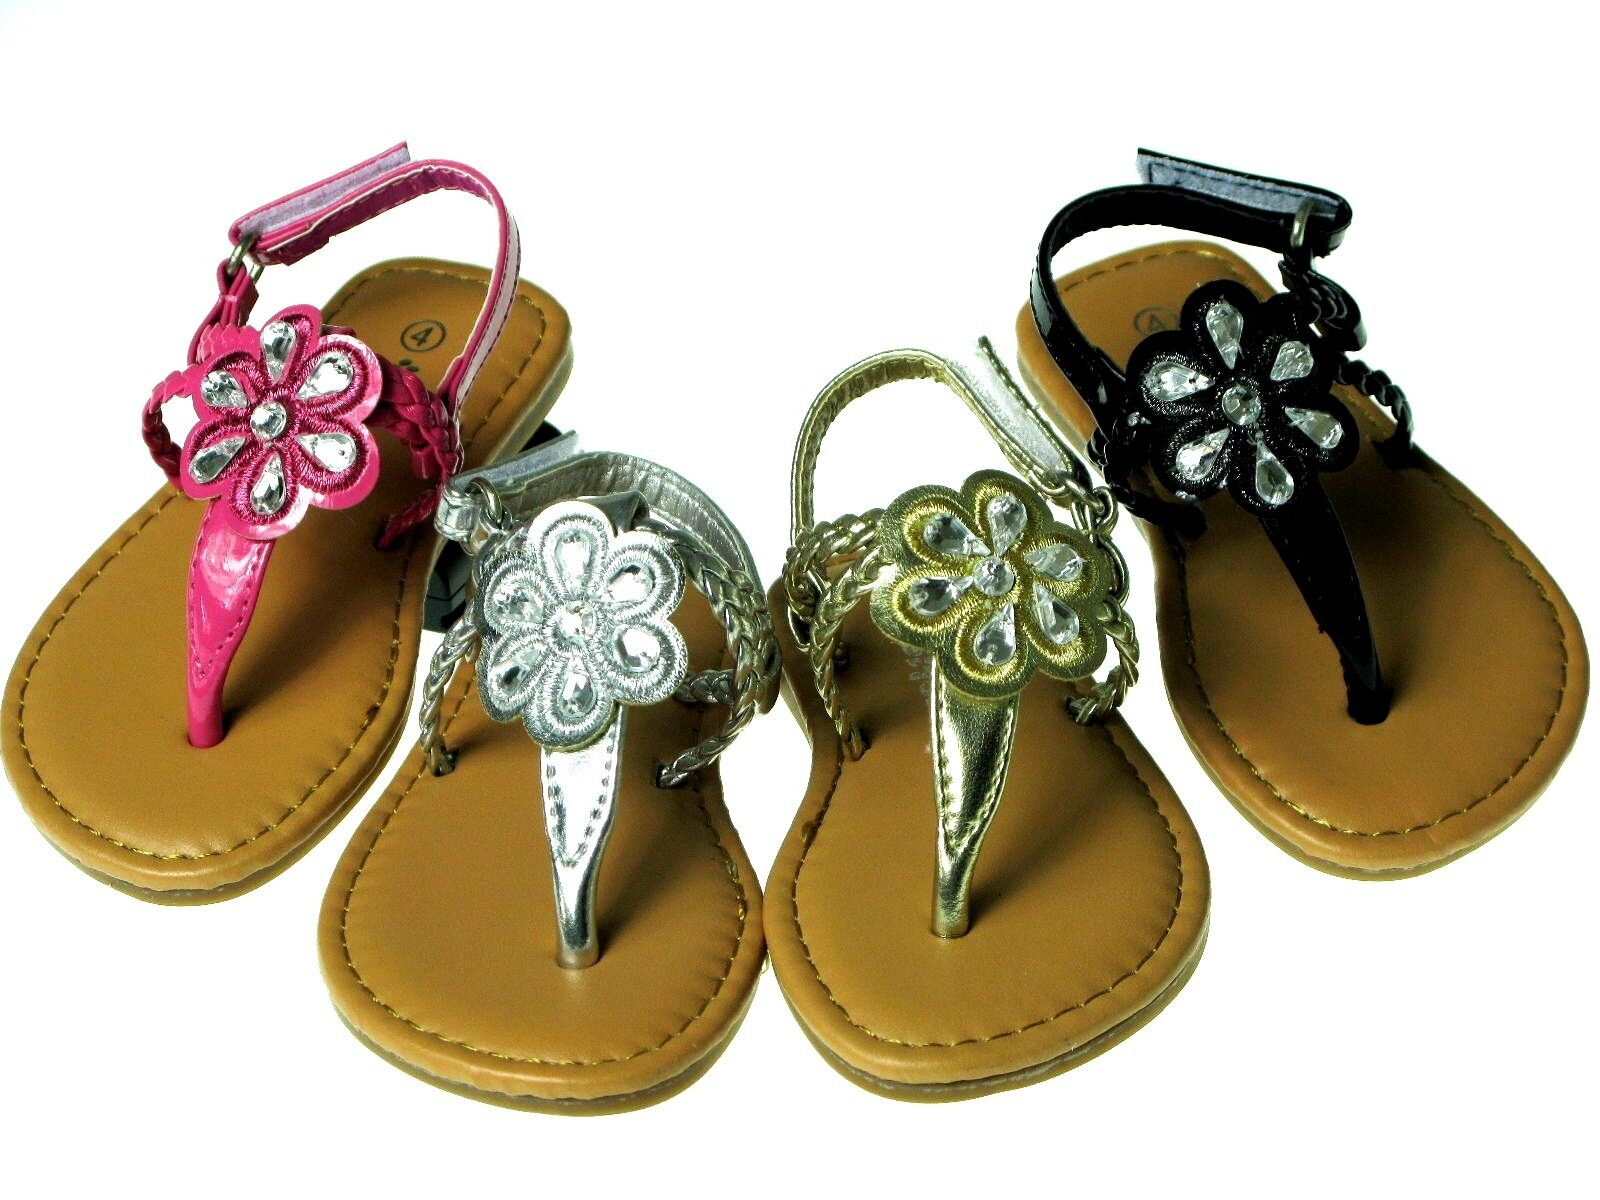 Hot New Baby Toddler Girls Adorable Sandals Size 1 12 Black Silver Gold Pink Ebay